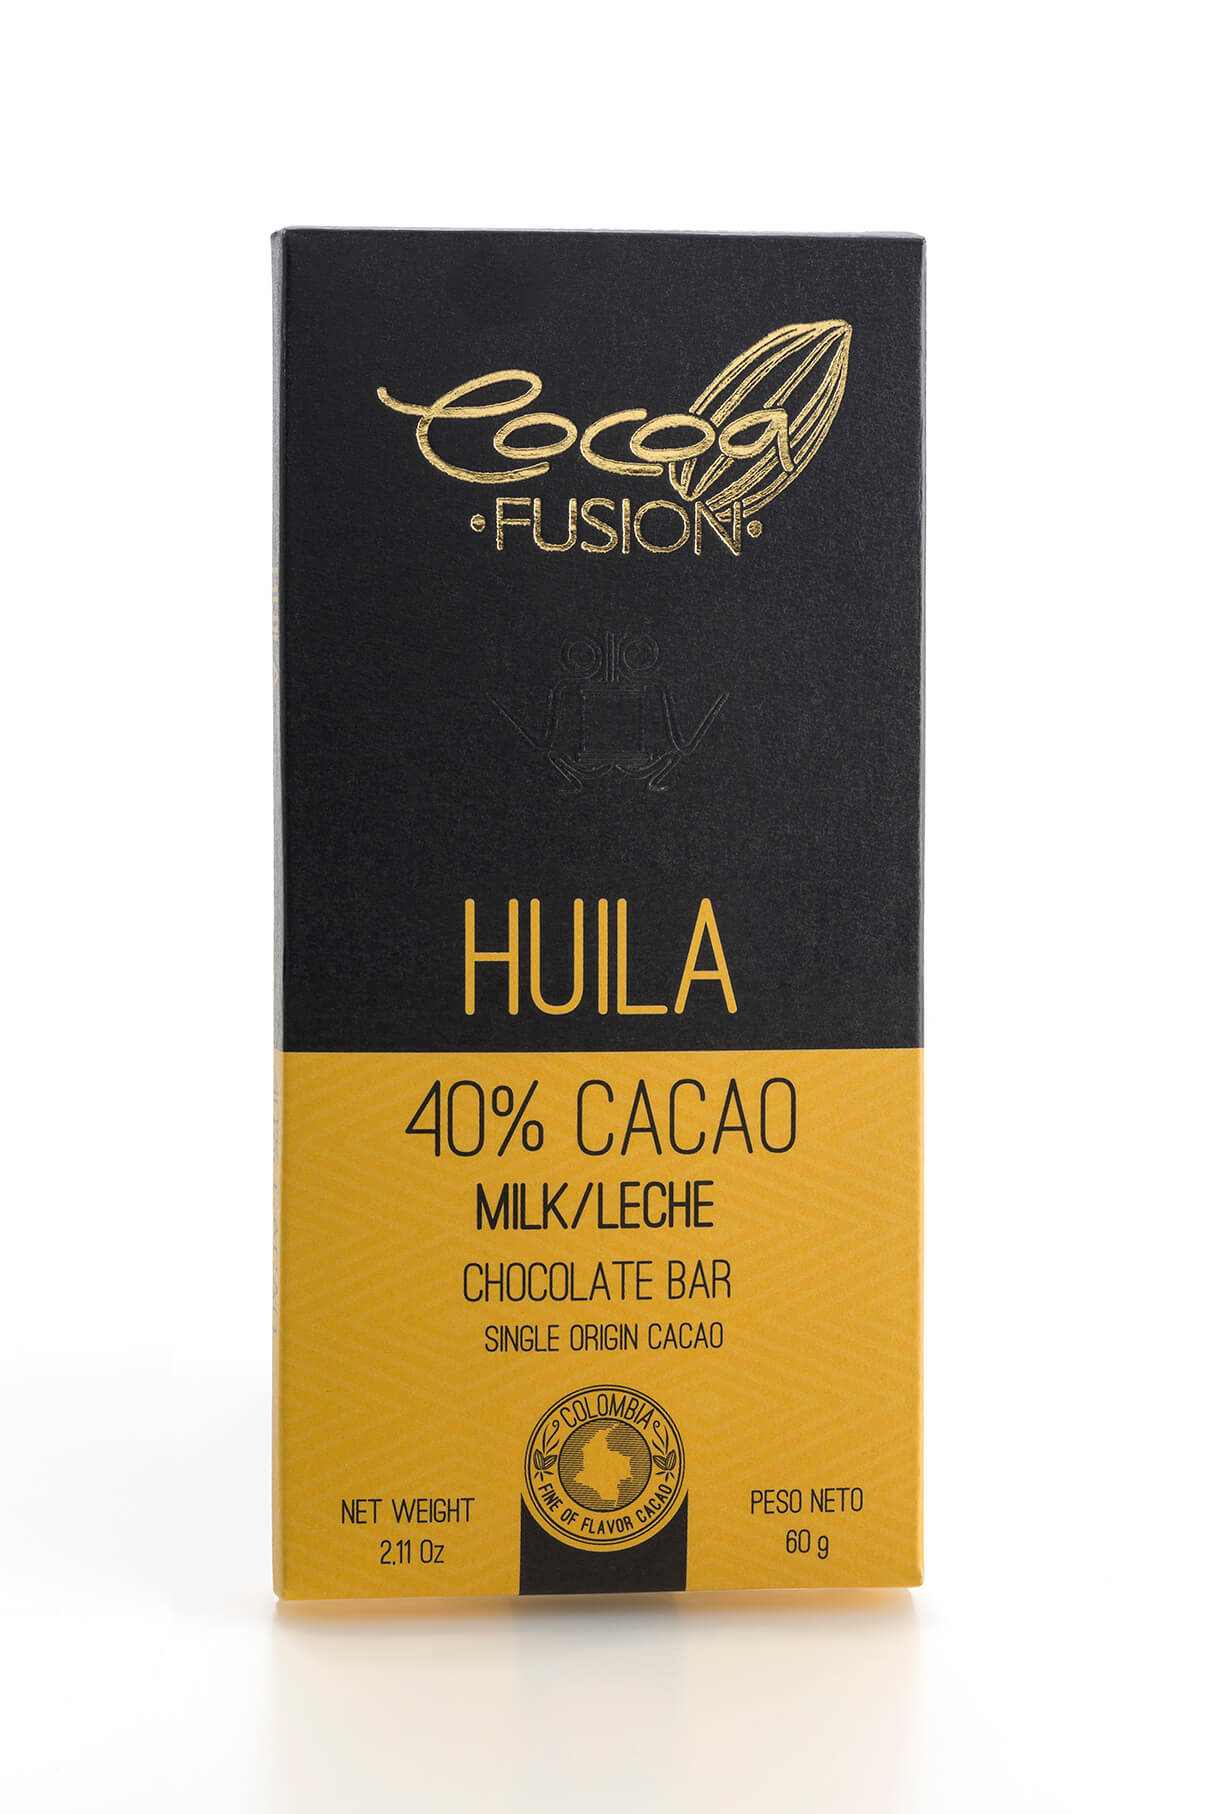 071595_Huila Tablet